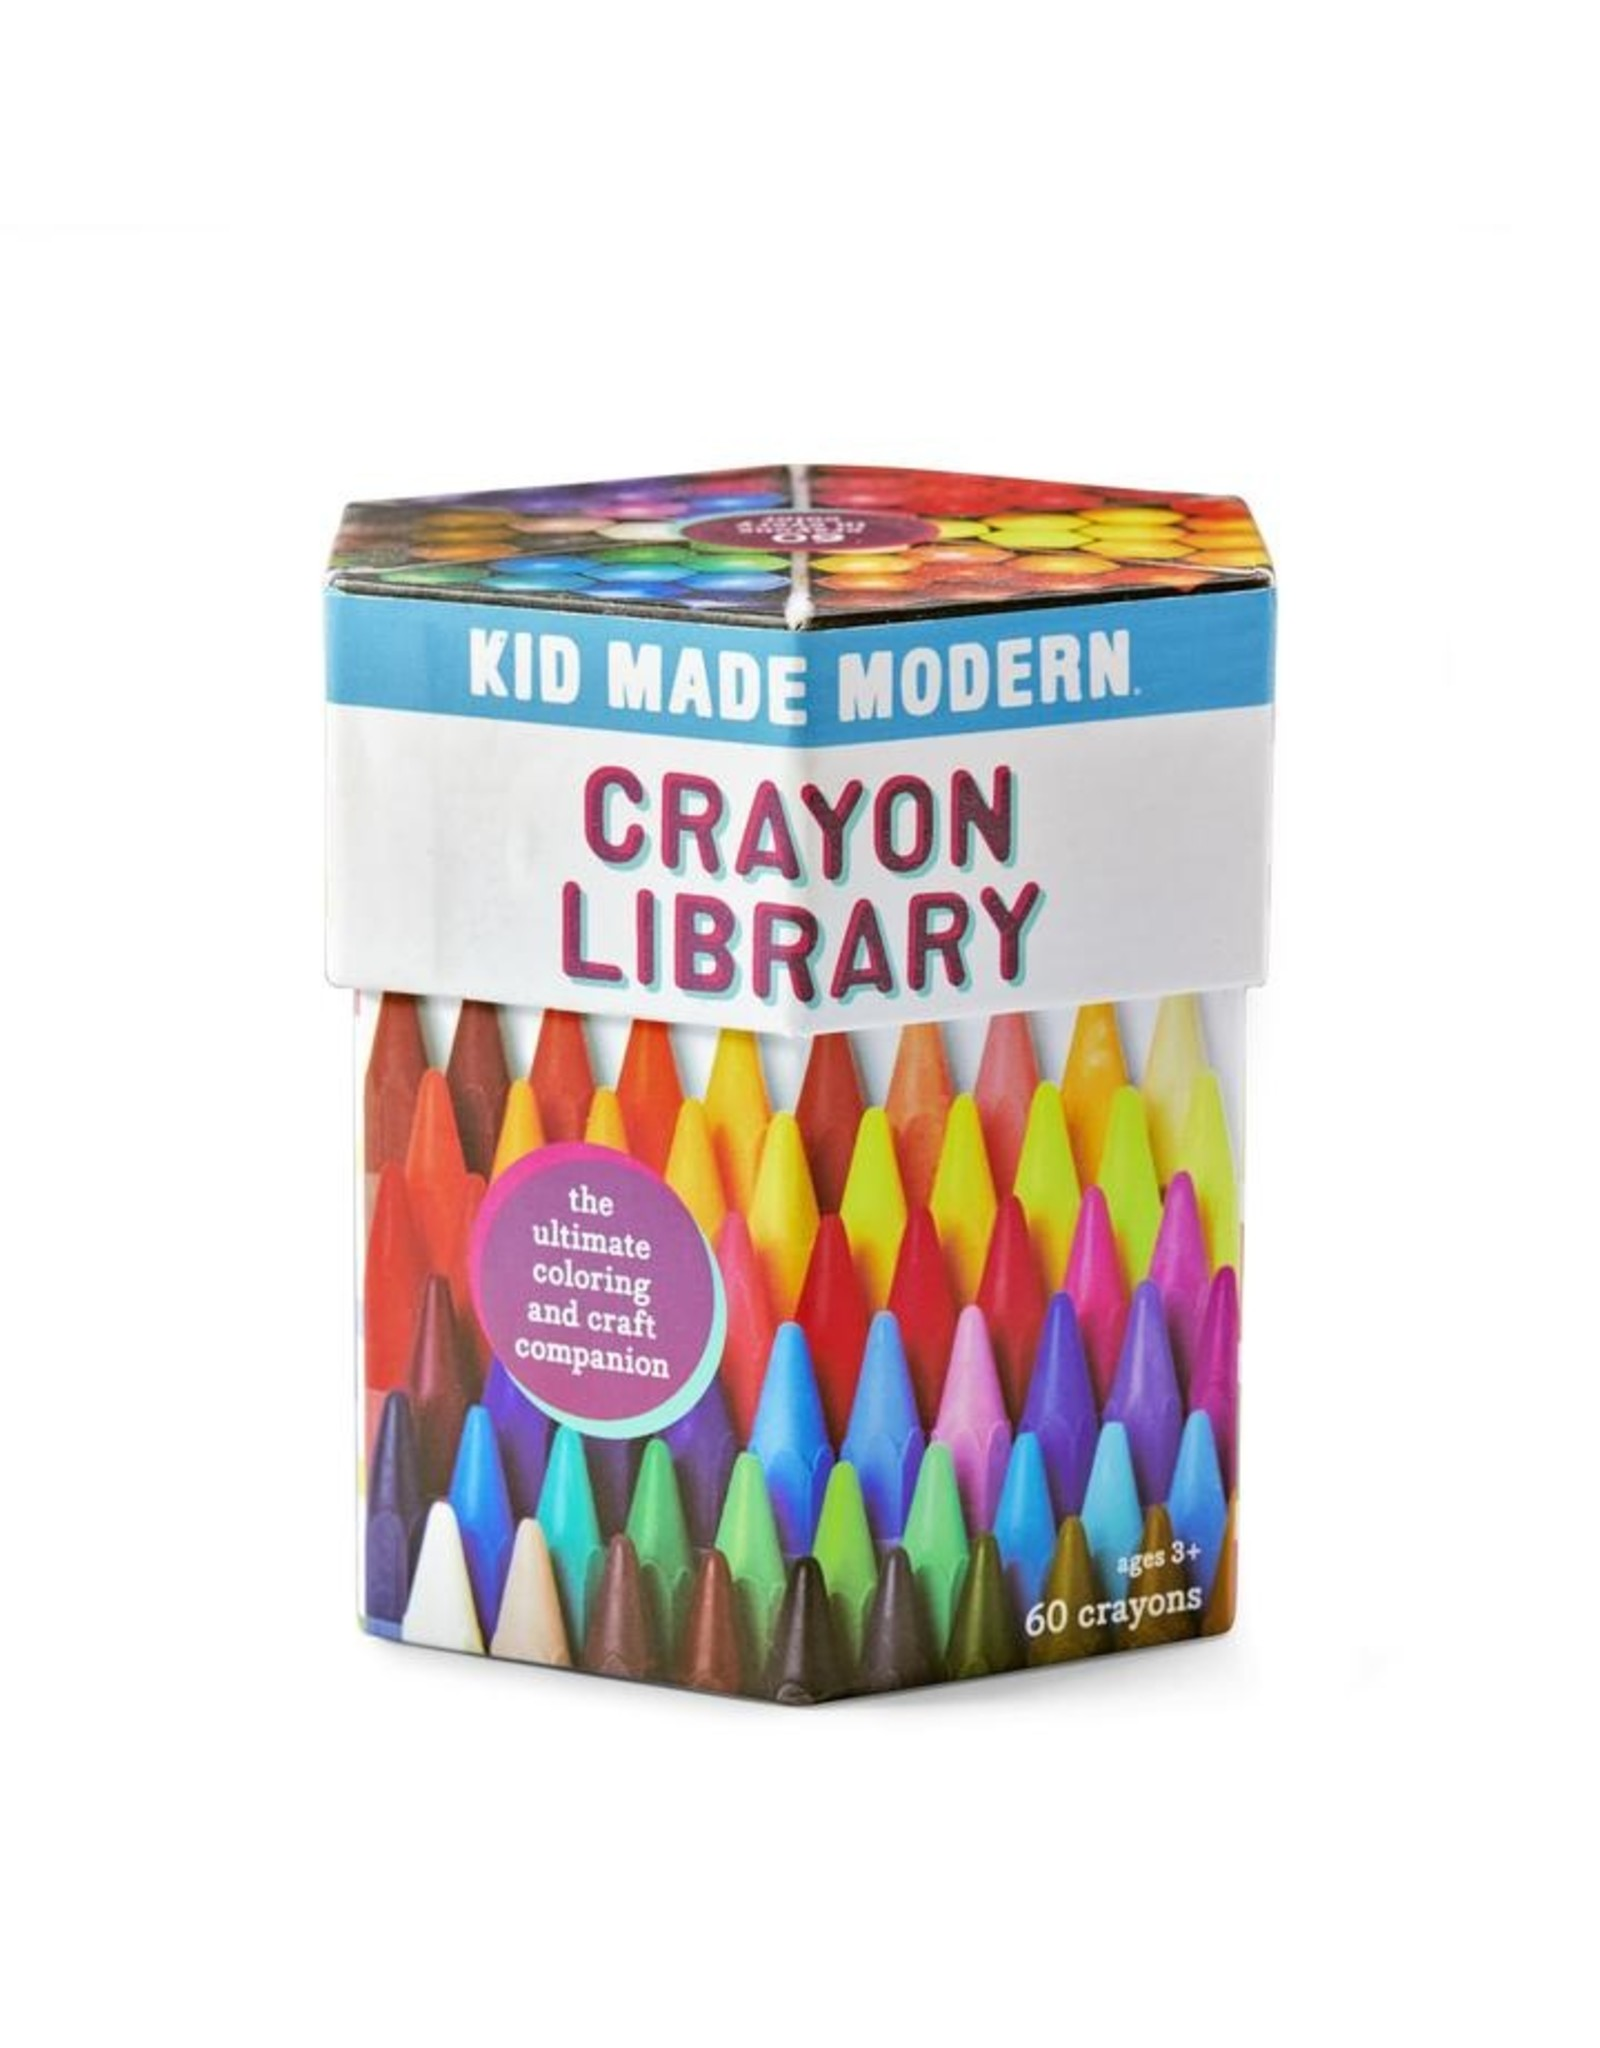 Kid Made Modern Crayon Library